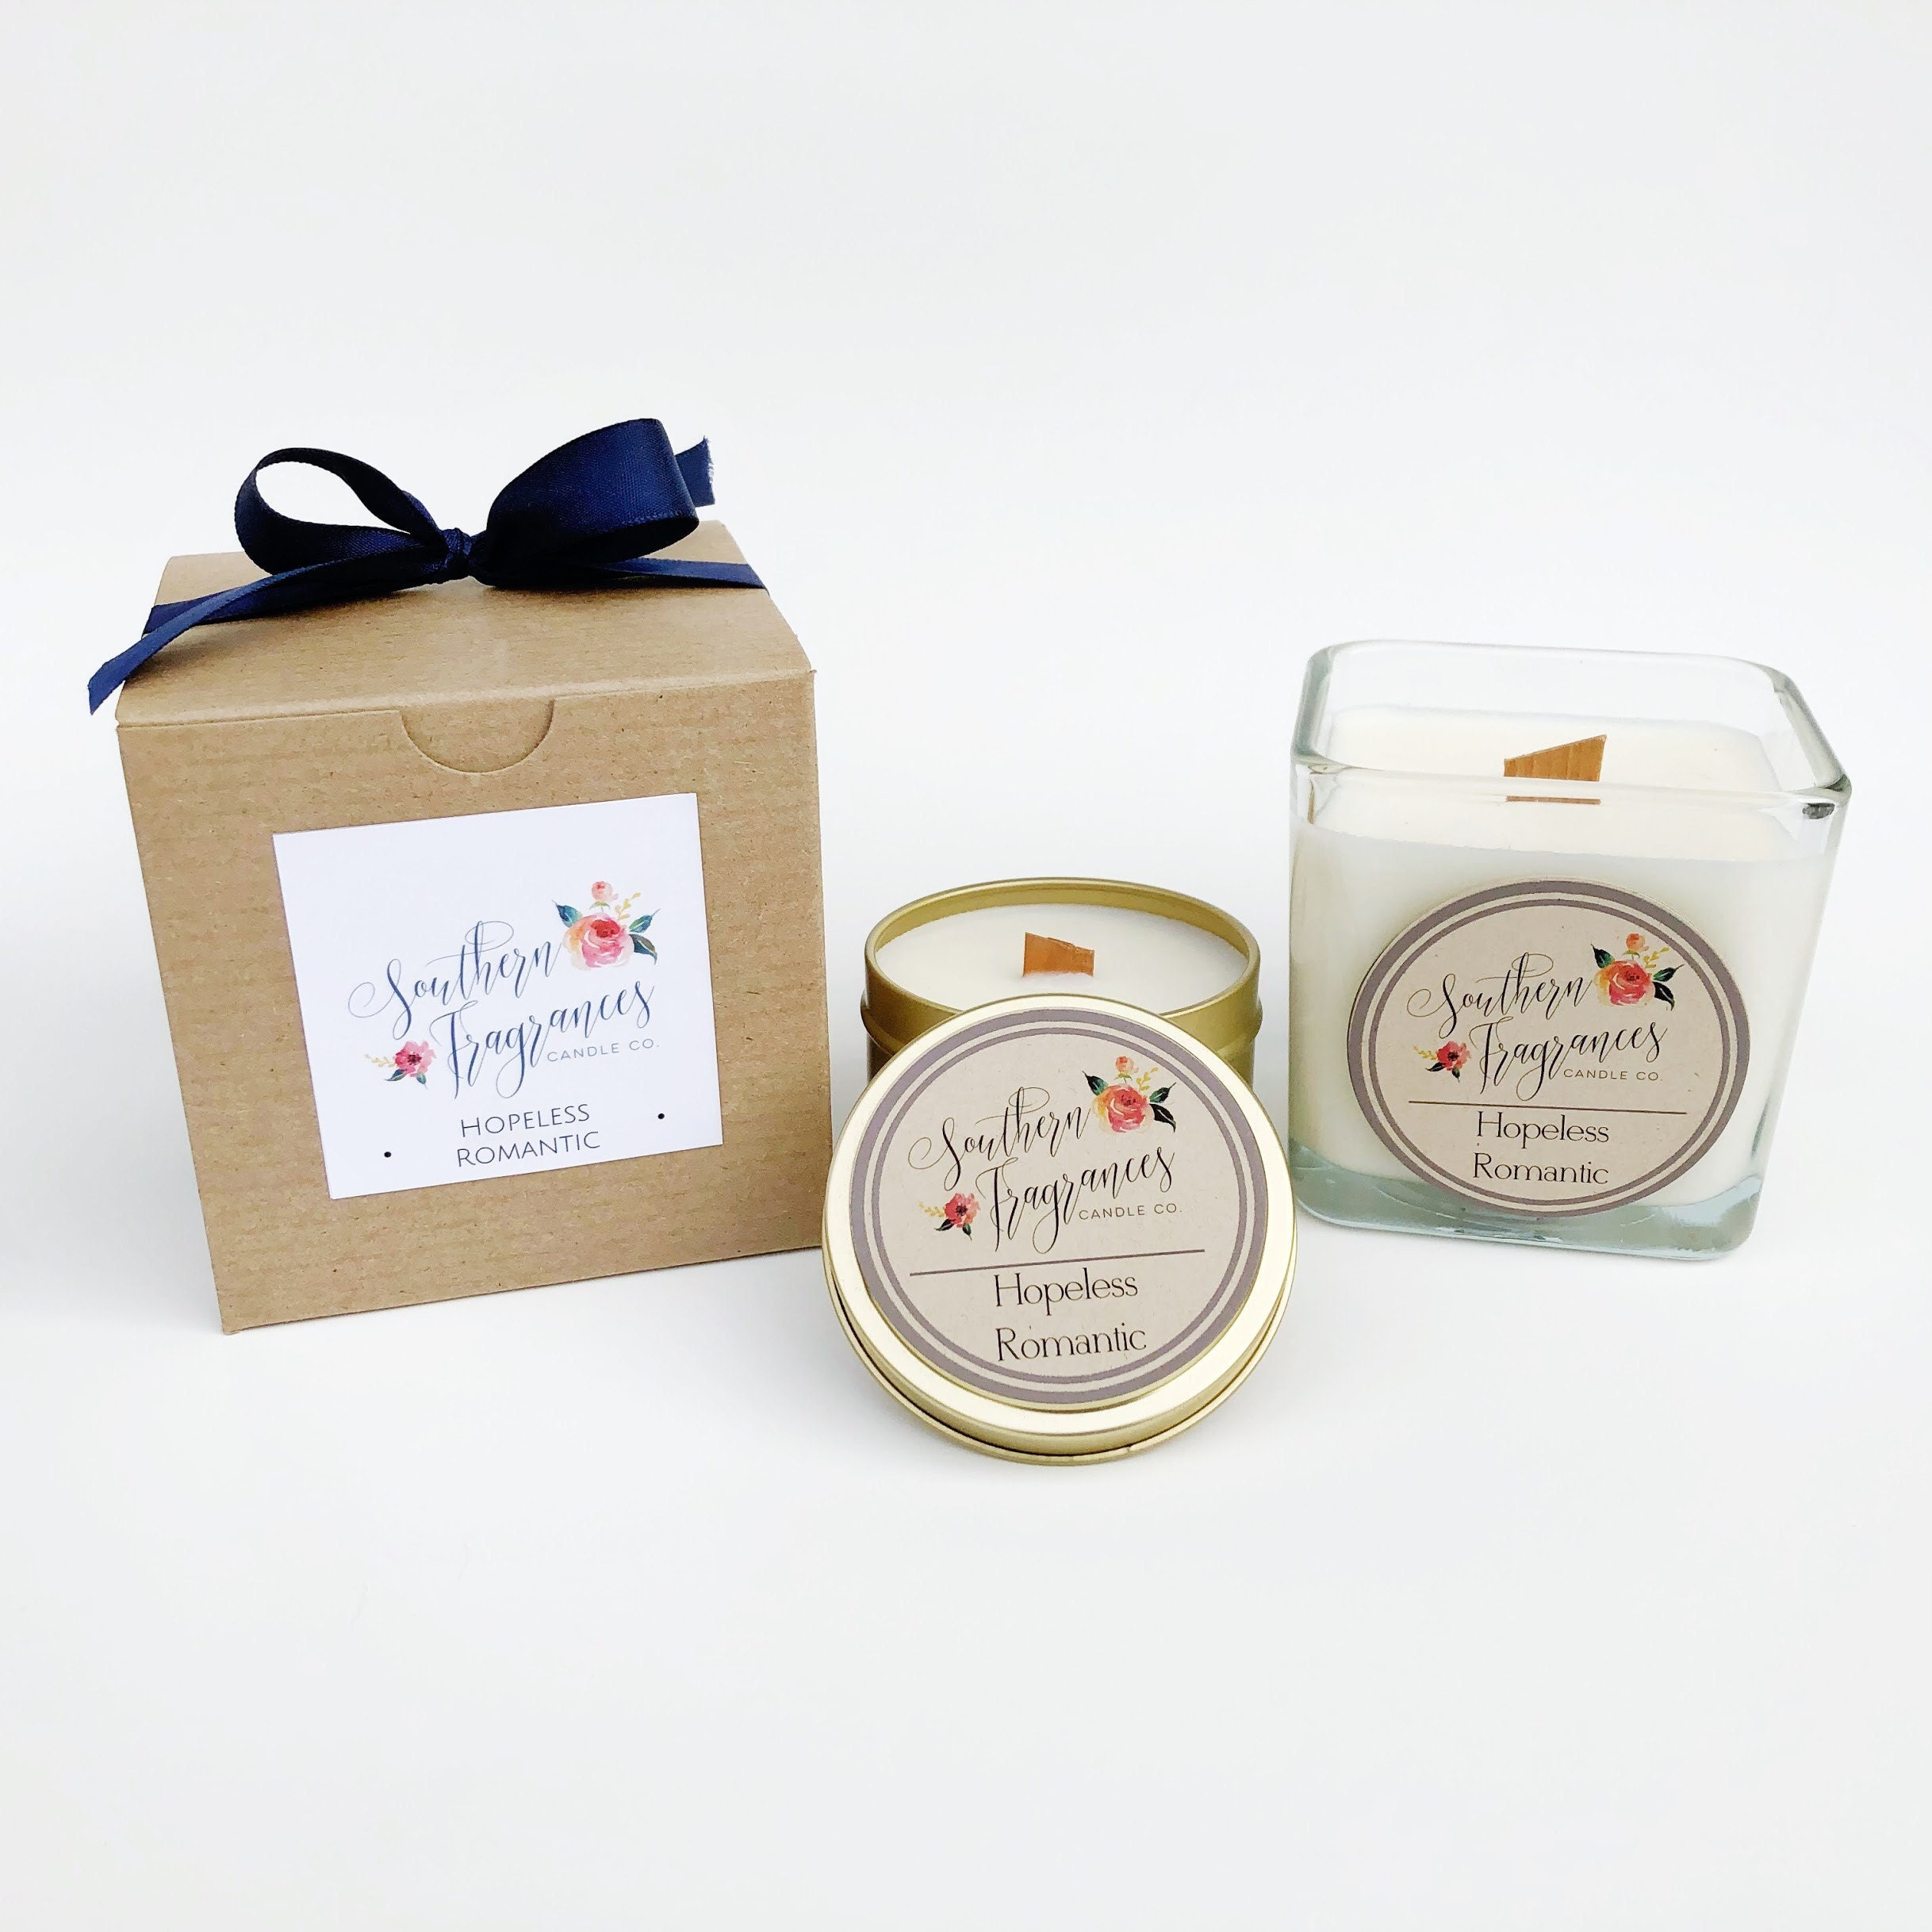 Southern Fragrances Hopeless Romantic Candles